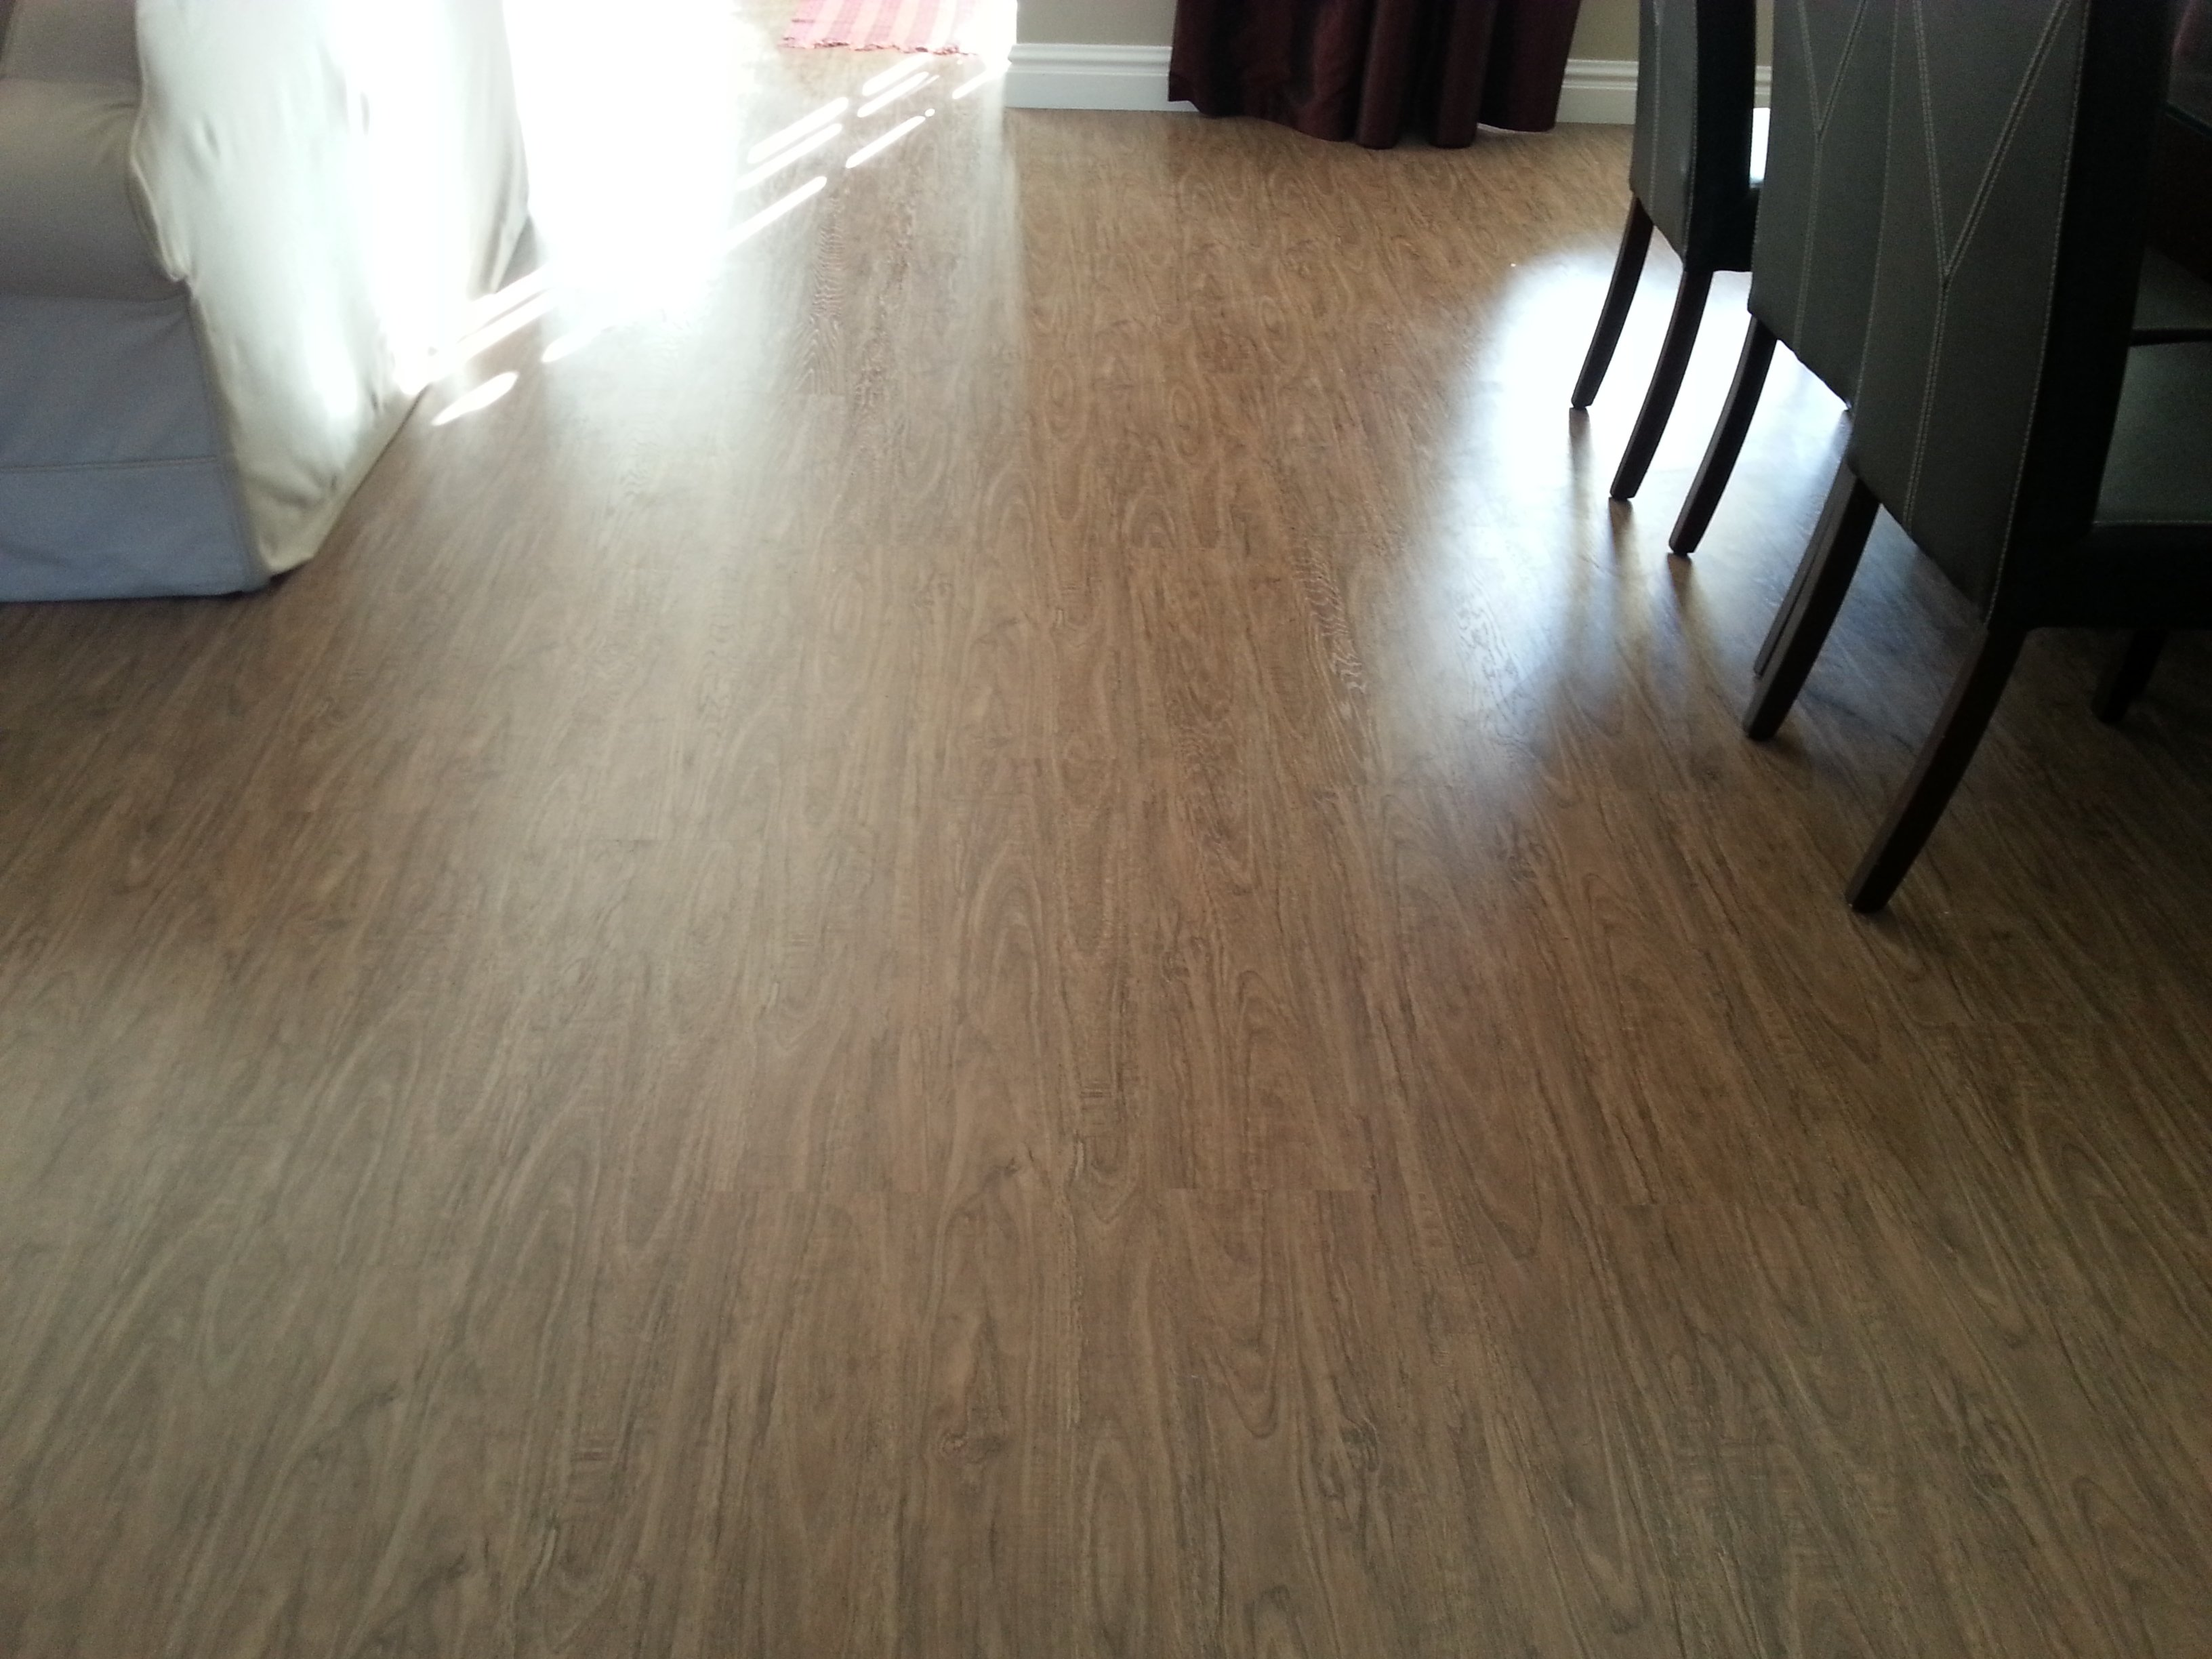 Sandalwood Laminate Flooring